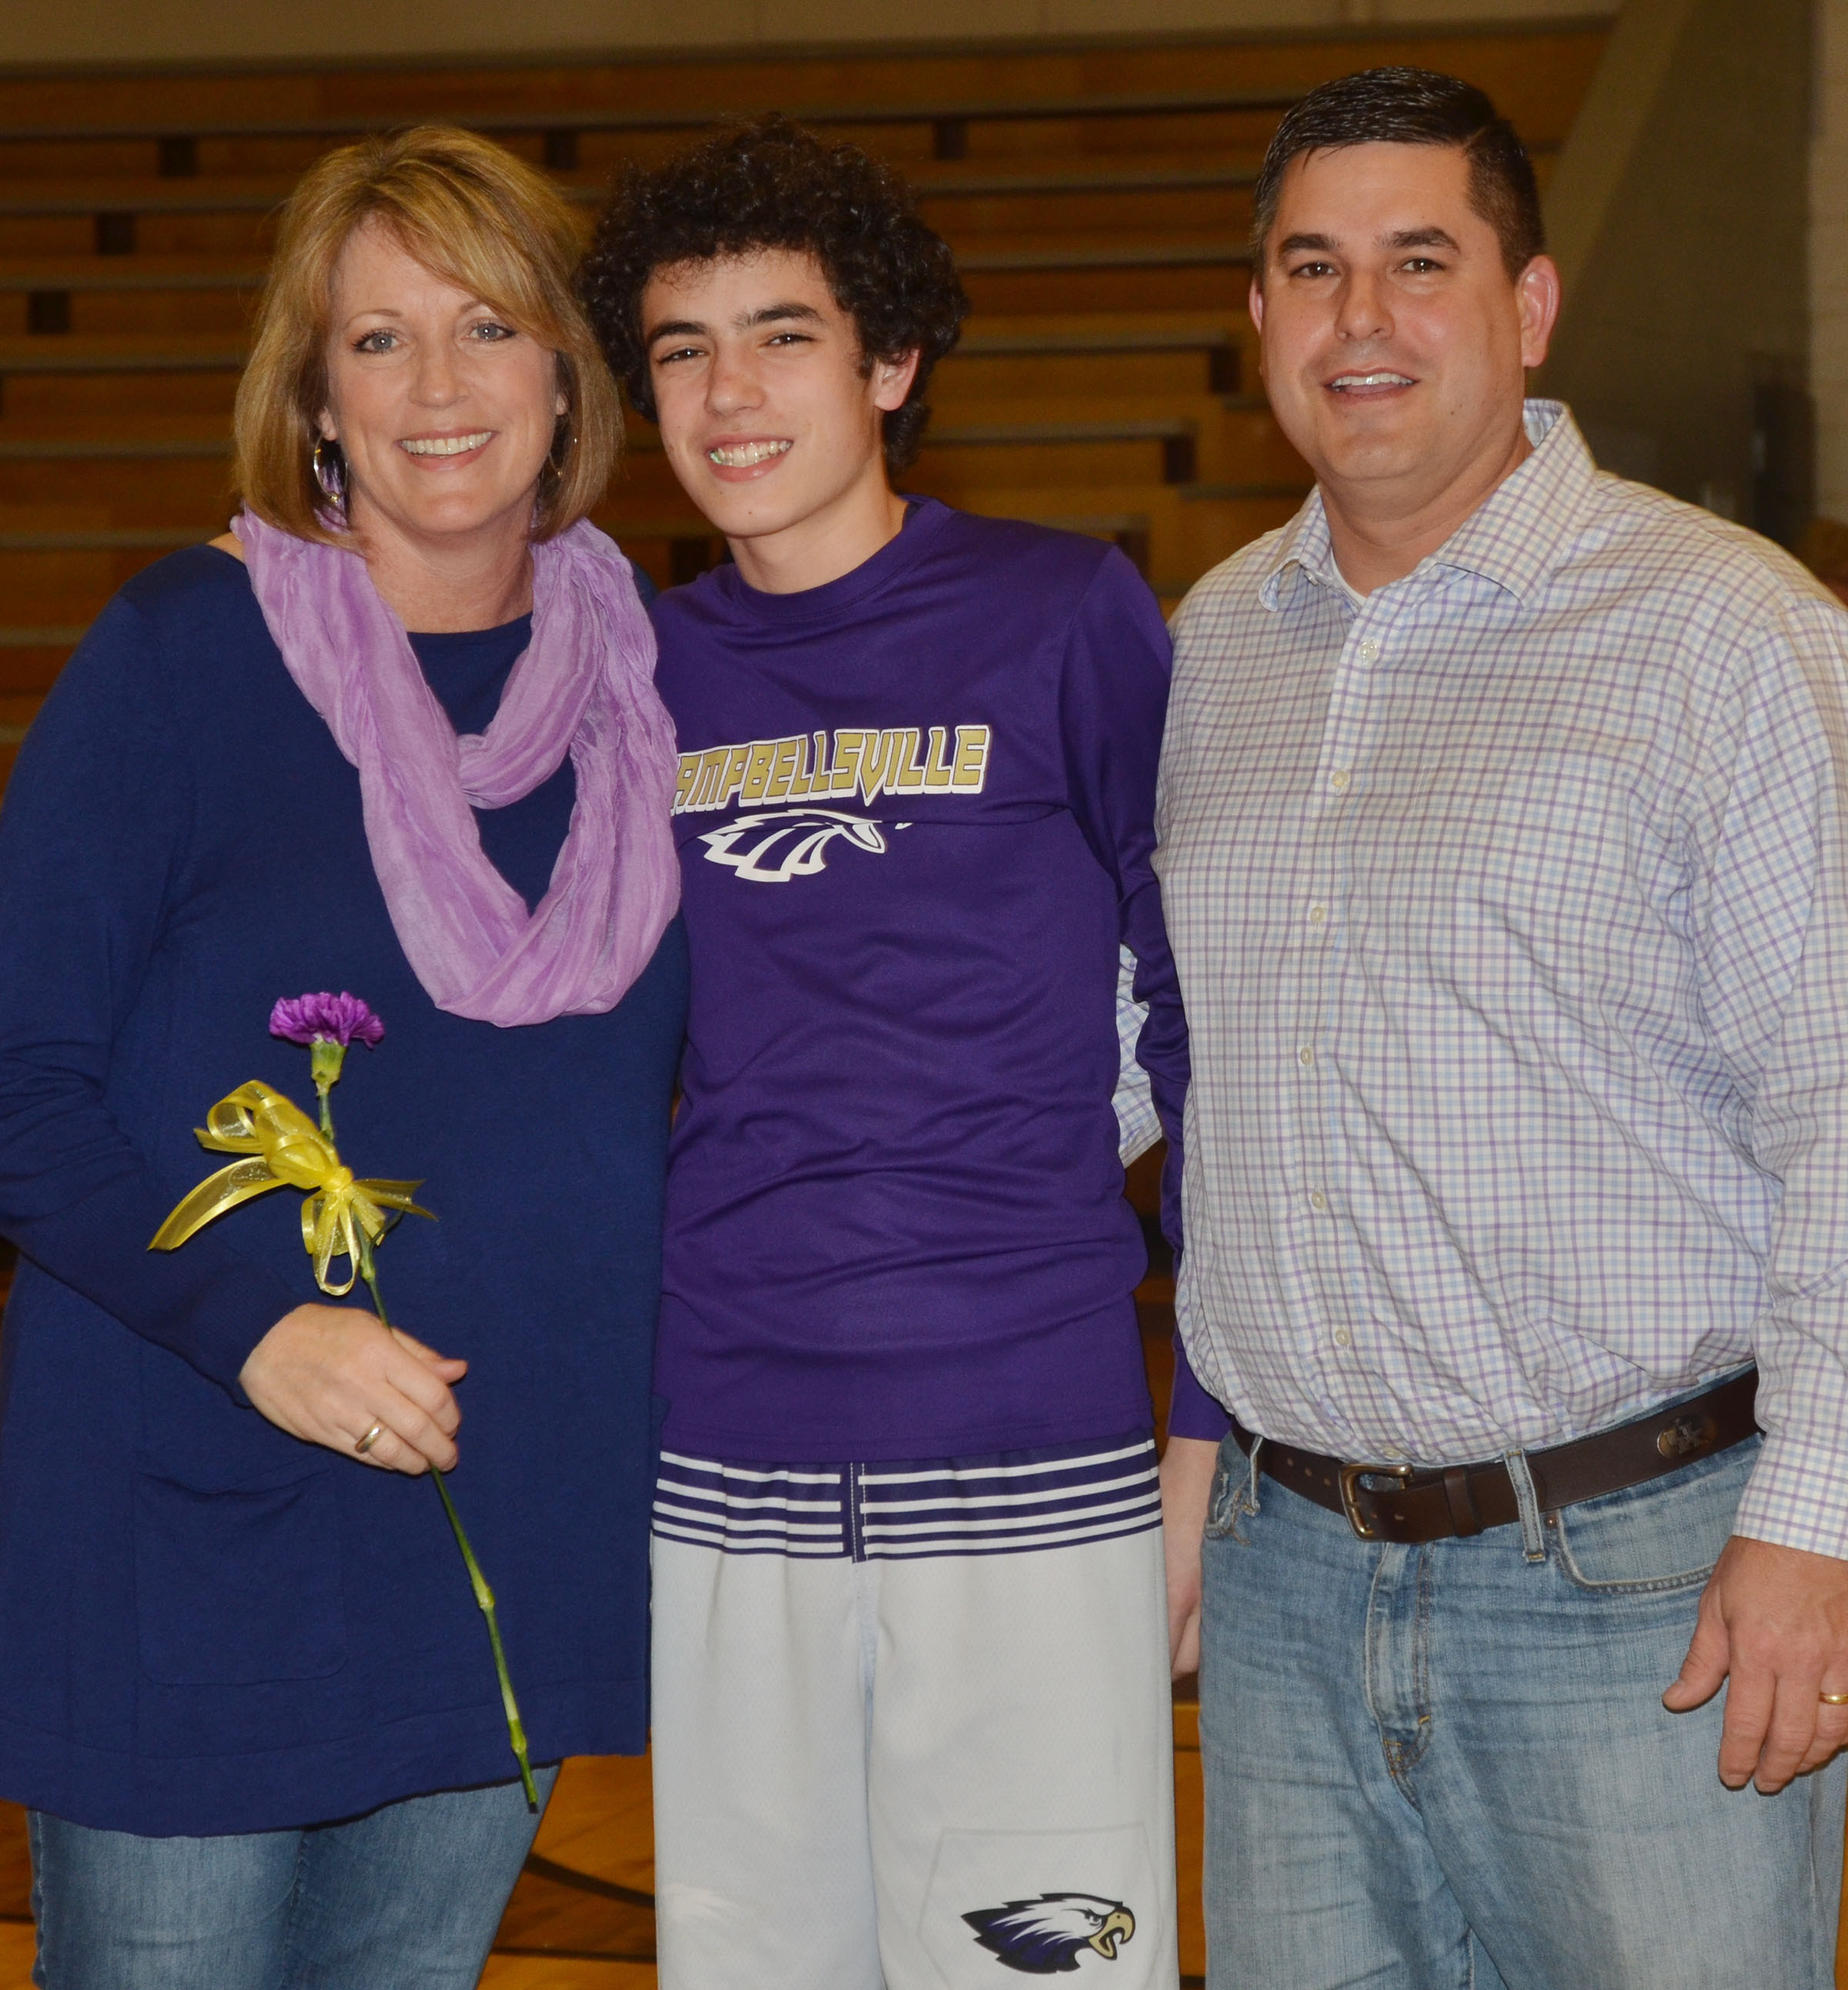 CMS eighth-grader Kameron Smith is honored. He is pictured with his parents, Andrea and Kirby.